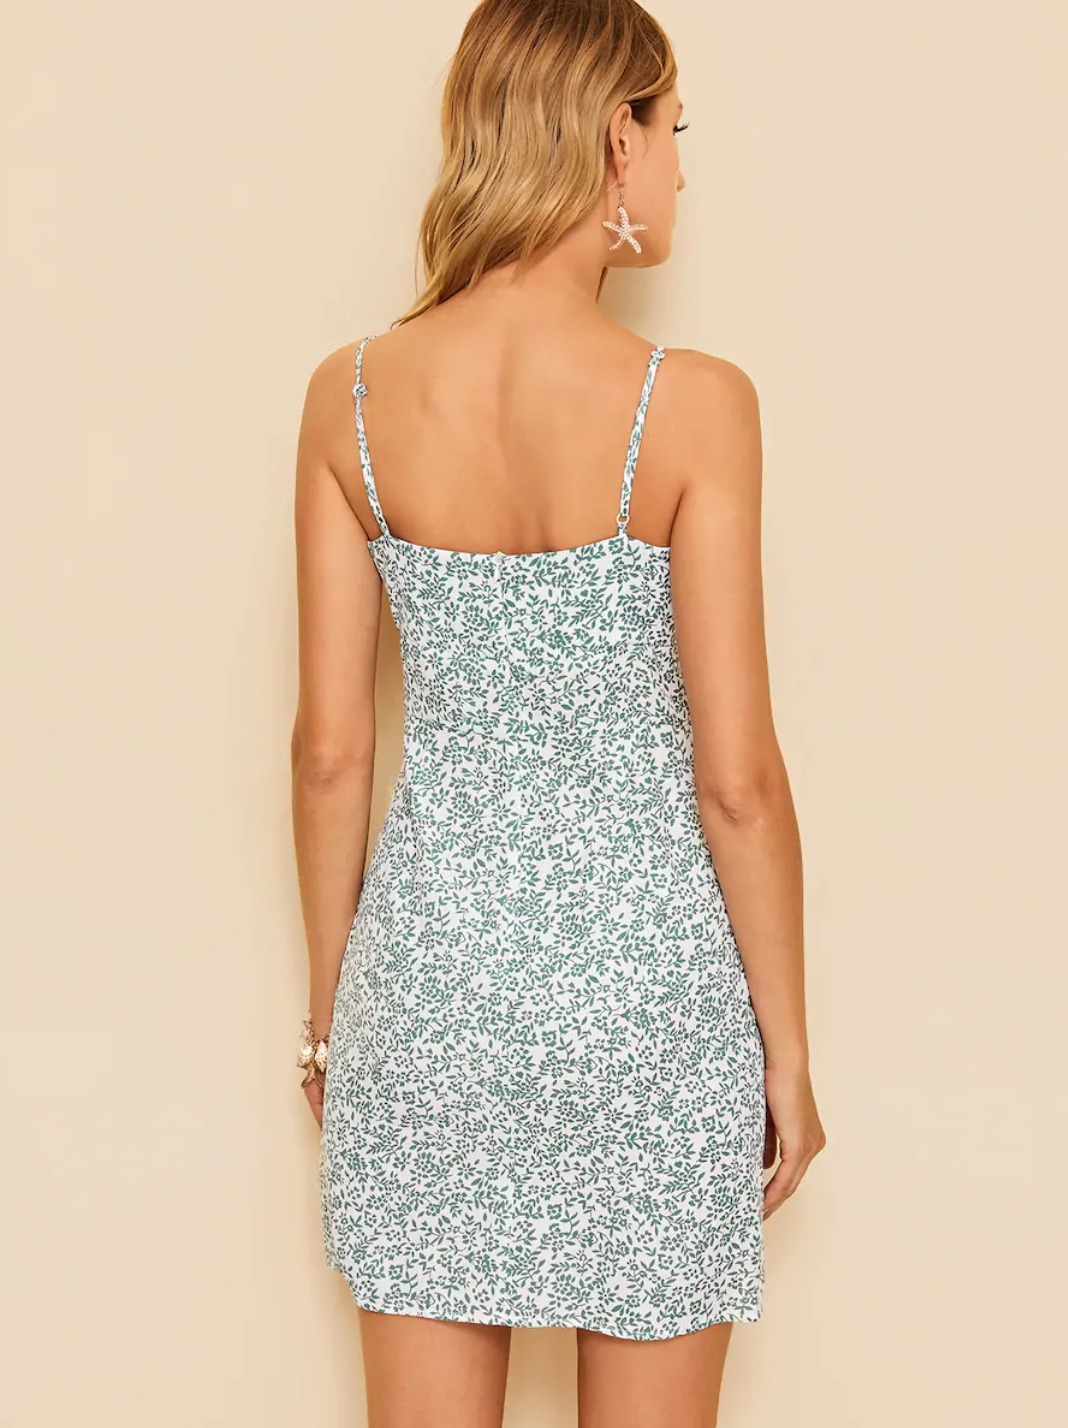 Leaf Print Knot Dress